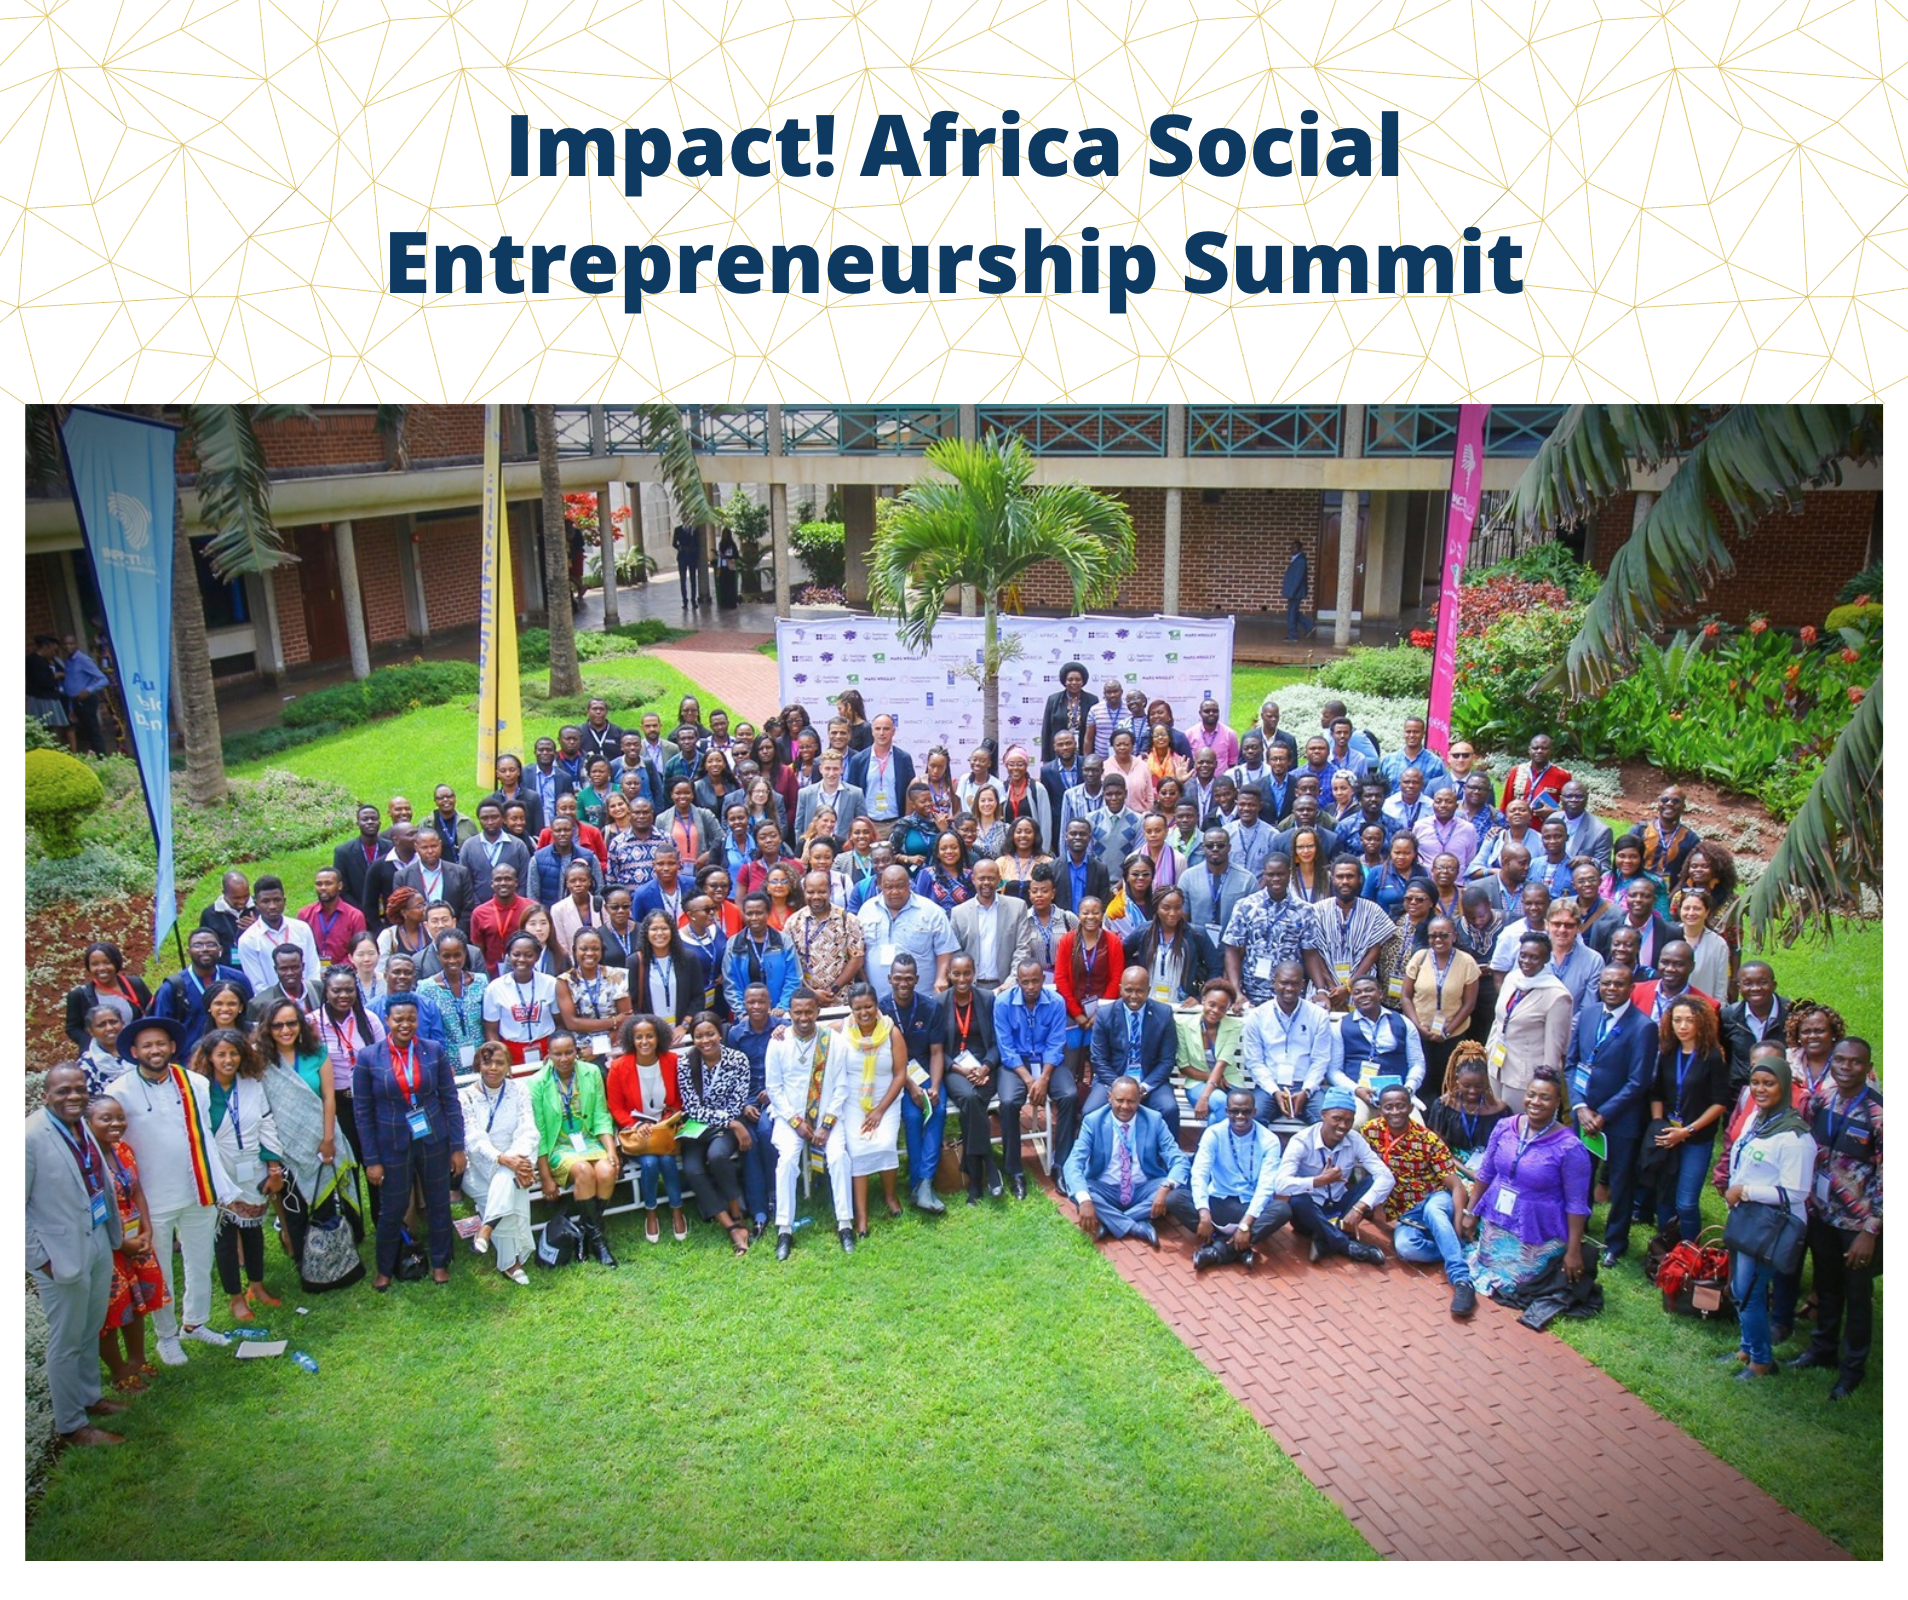 Attendees of the Impact Africa Summit 2019